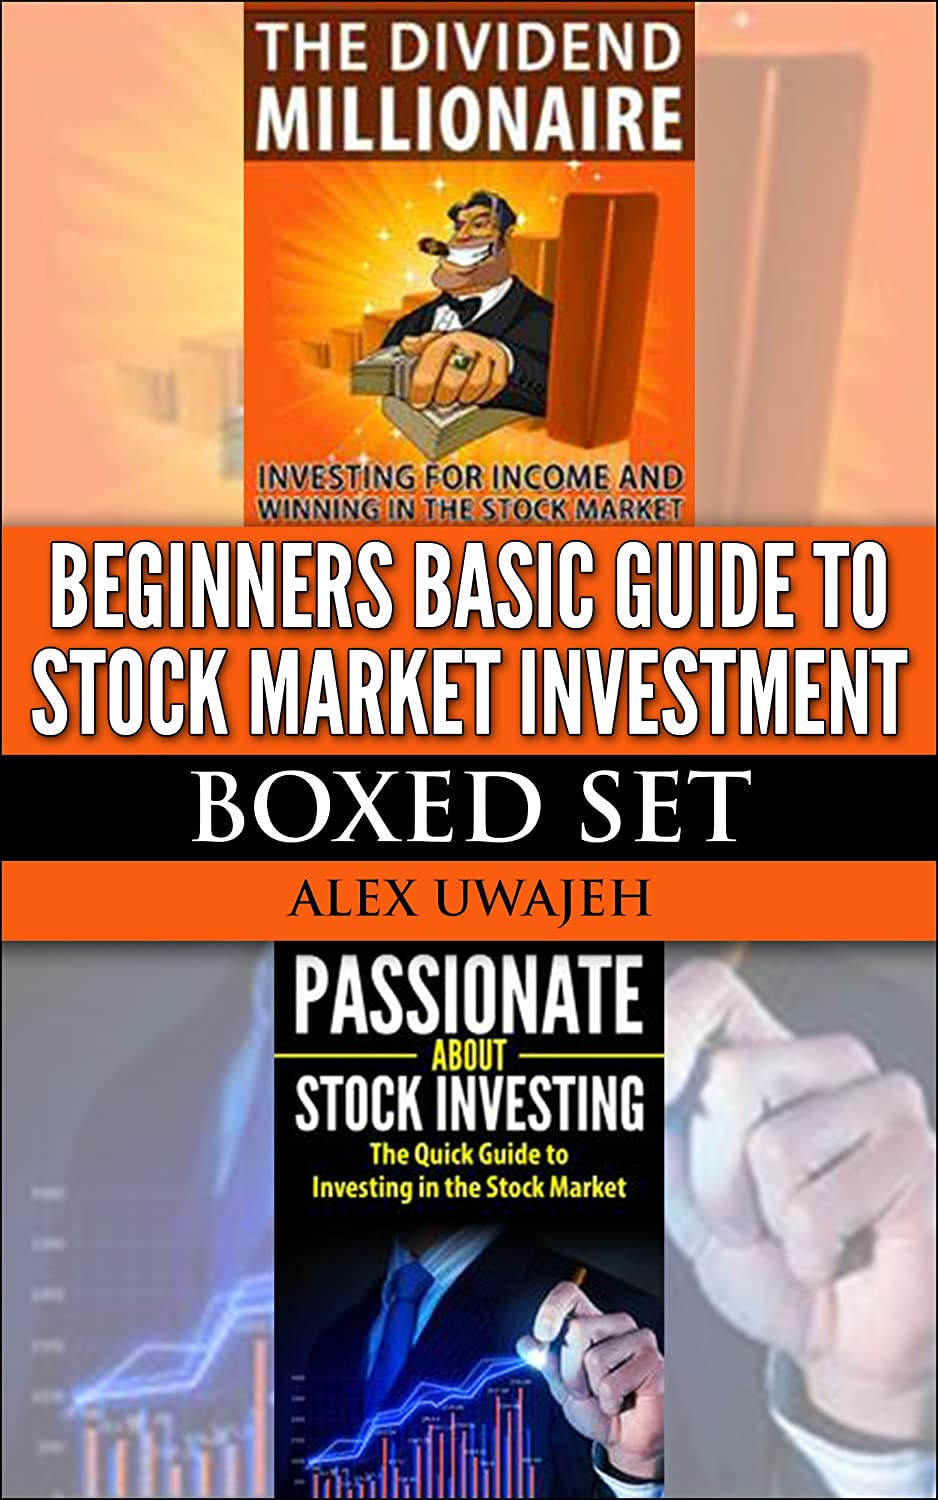 Beginners-Basic-Guide-to-Stock-Market-Investment-Boxed-Set